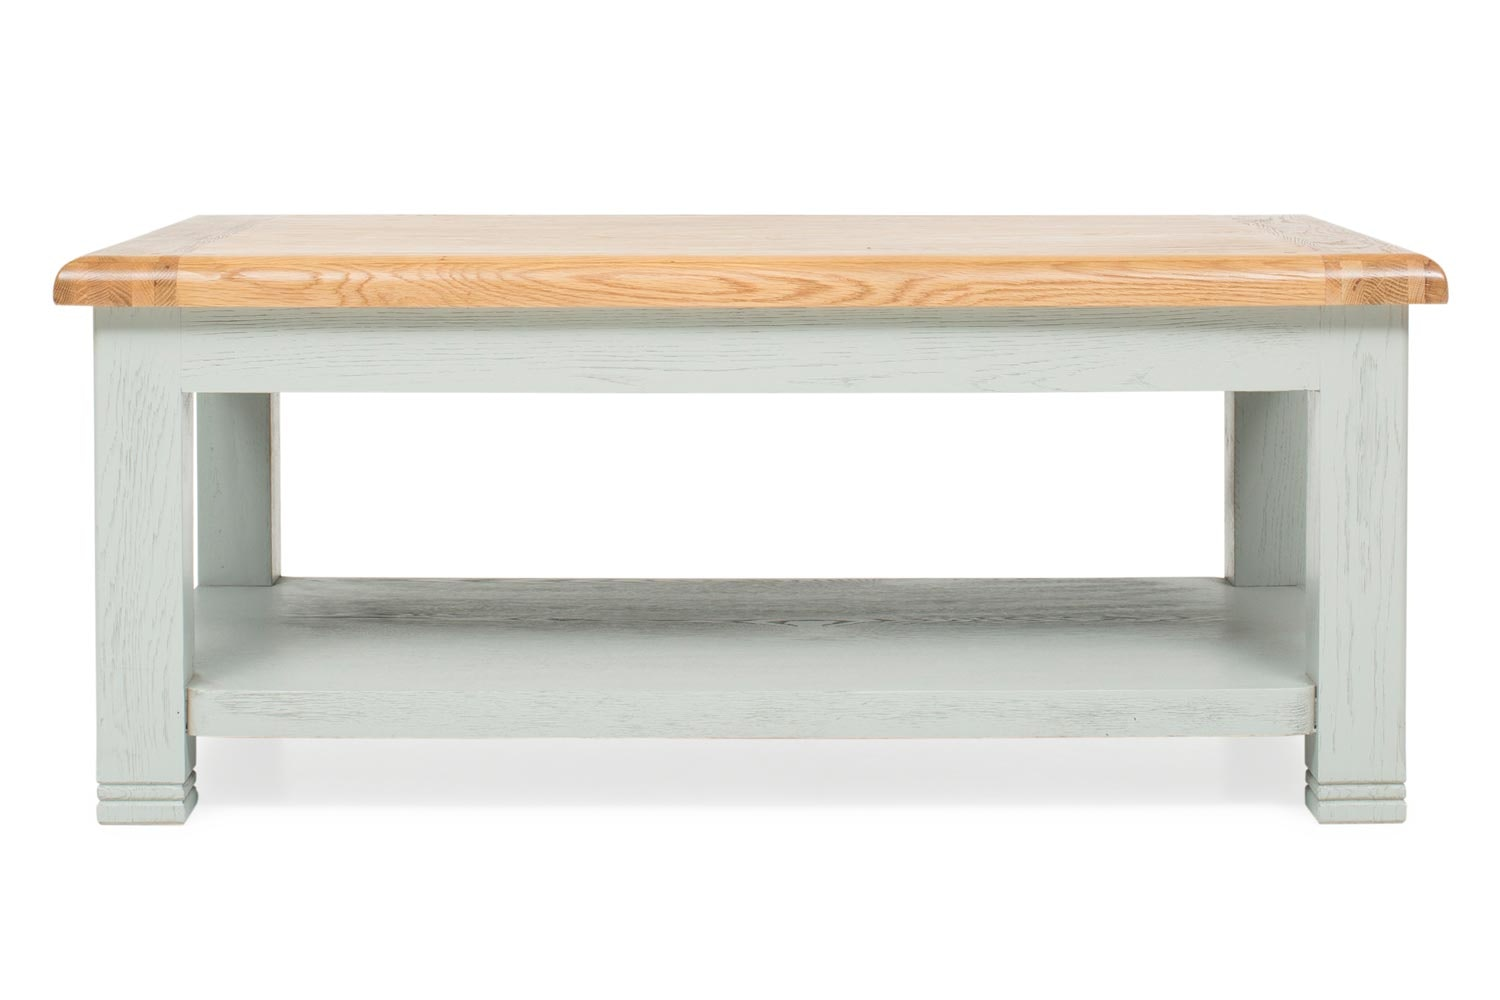 hardwood coffee table reclaimed queenstown coffee table painted grey tables harvey norman furniture ireland